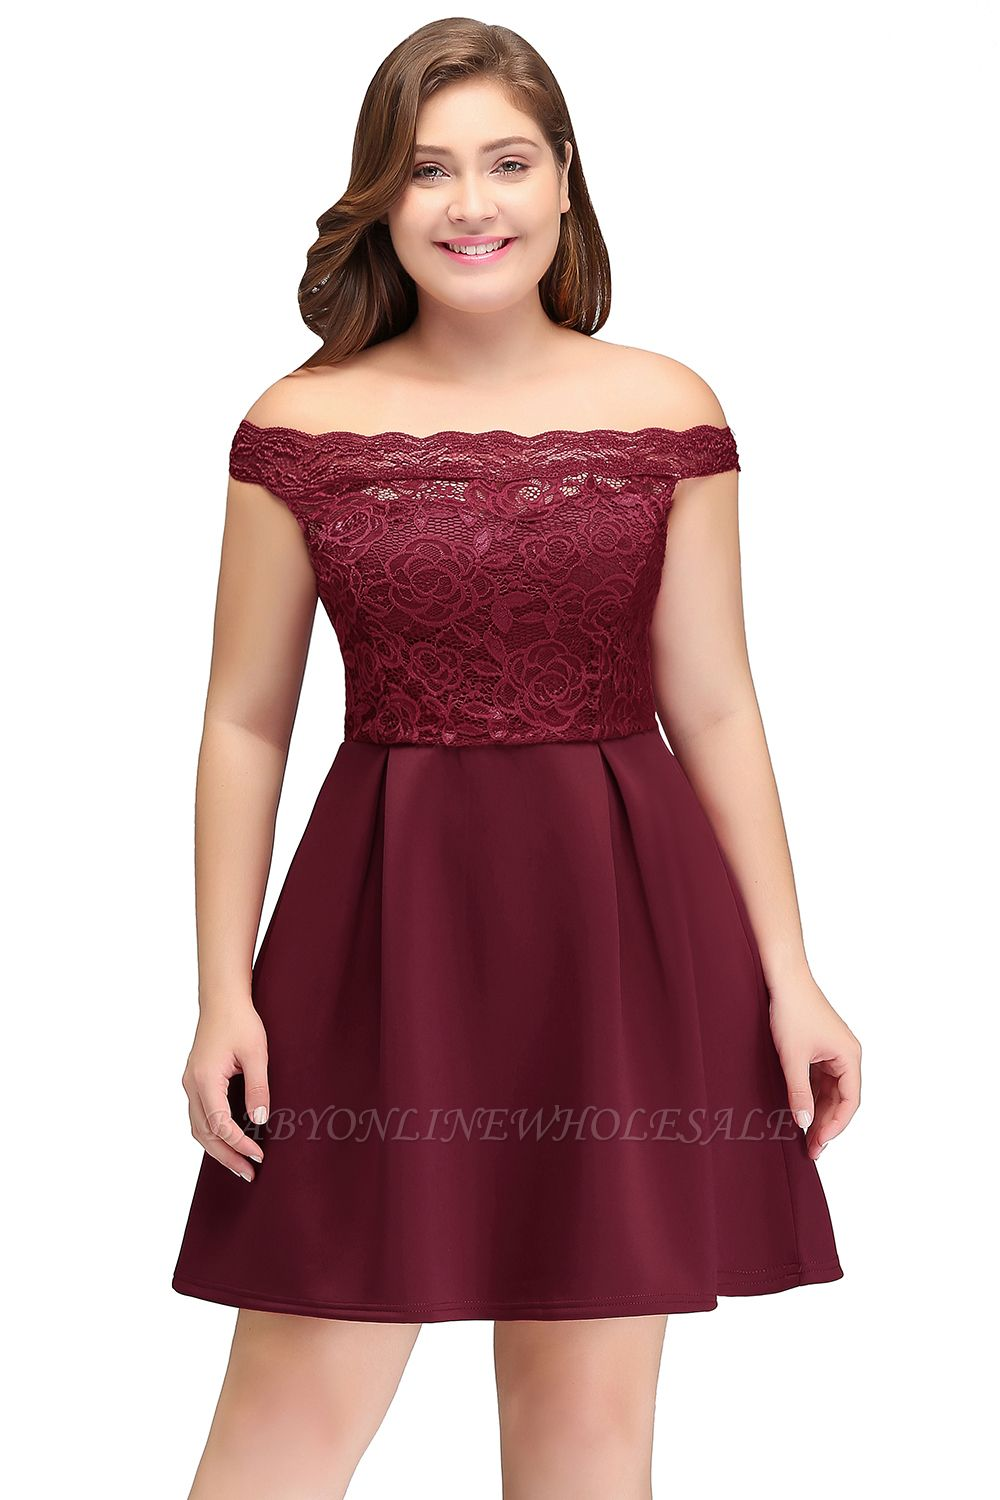 JAYCEE | A-Line Off-Shoulder Short Lace Chiffon Plus size homecoming  Dresses Burgundy